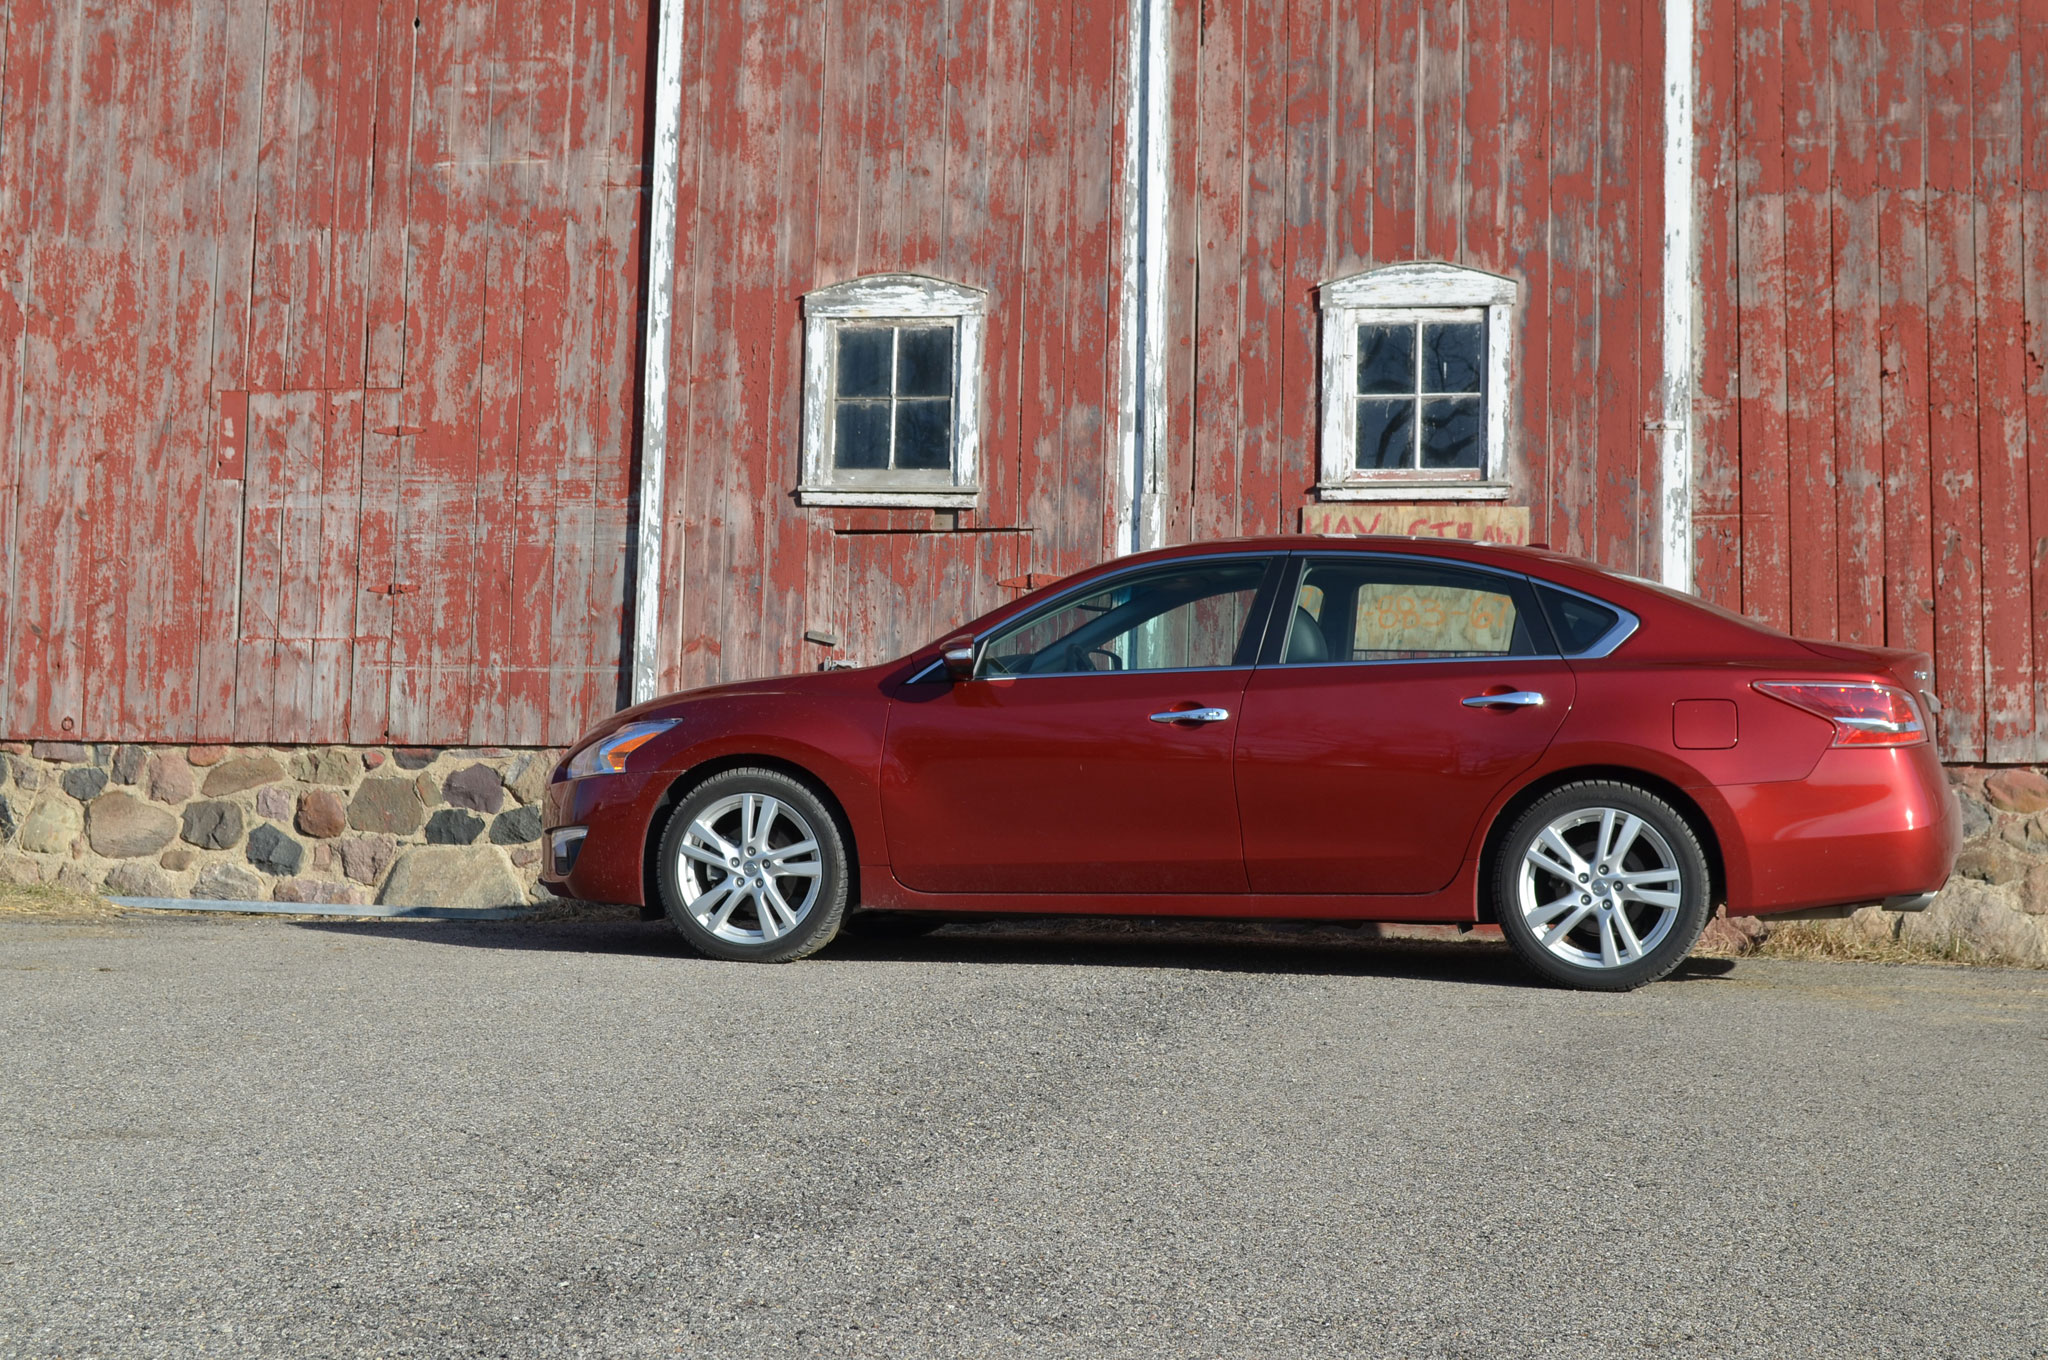 2013 Nissan Altima 3 5 SL Left Side View 21